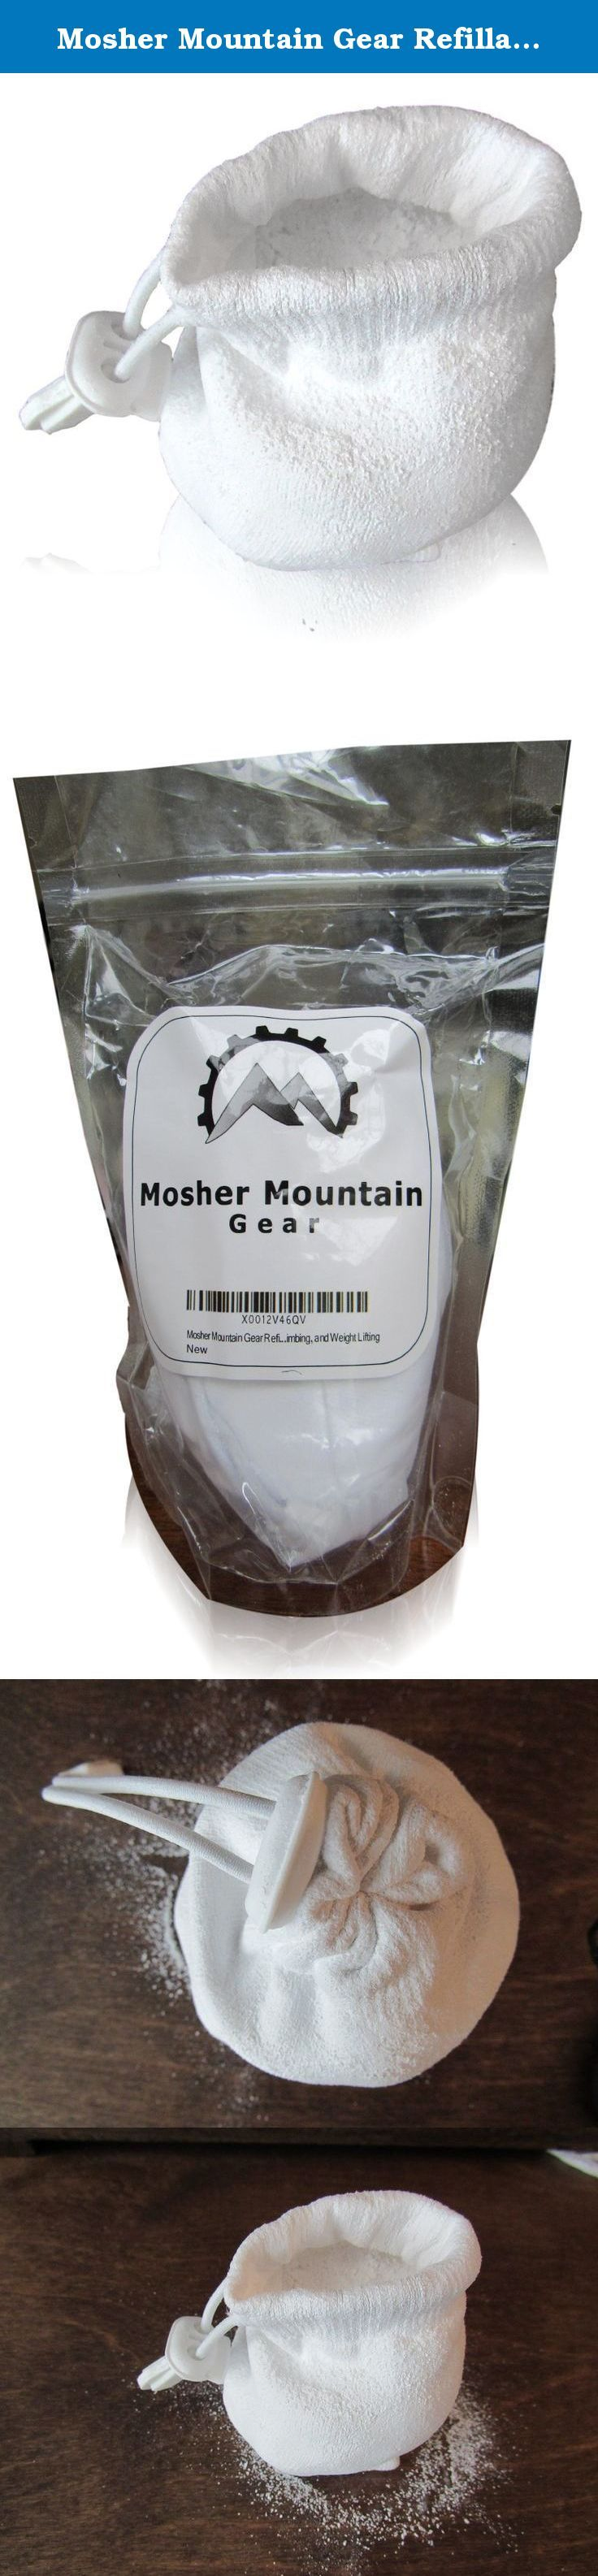 Mosher Mountain Gear Refillable Chalk Ball for Gymnastics, Climbing, CrossFit and Weight Lifting. 100% pure Magnesium Carbonate Chalk Ball (Powdered chalk in a cotton sack) - NO hidden components, simple and well made. Greatly improves grip for gymnastics, rock climbing, bouldering, weight lifting, etc Less messy and lasts longer than powdered or block chalk - no more spilled chalk Save money- refill chalk with chalk from Mosher Mountain Gear or elsewhere with an easily opening cinch Get...